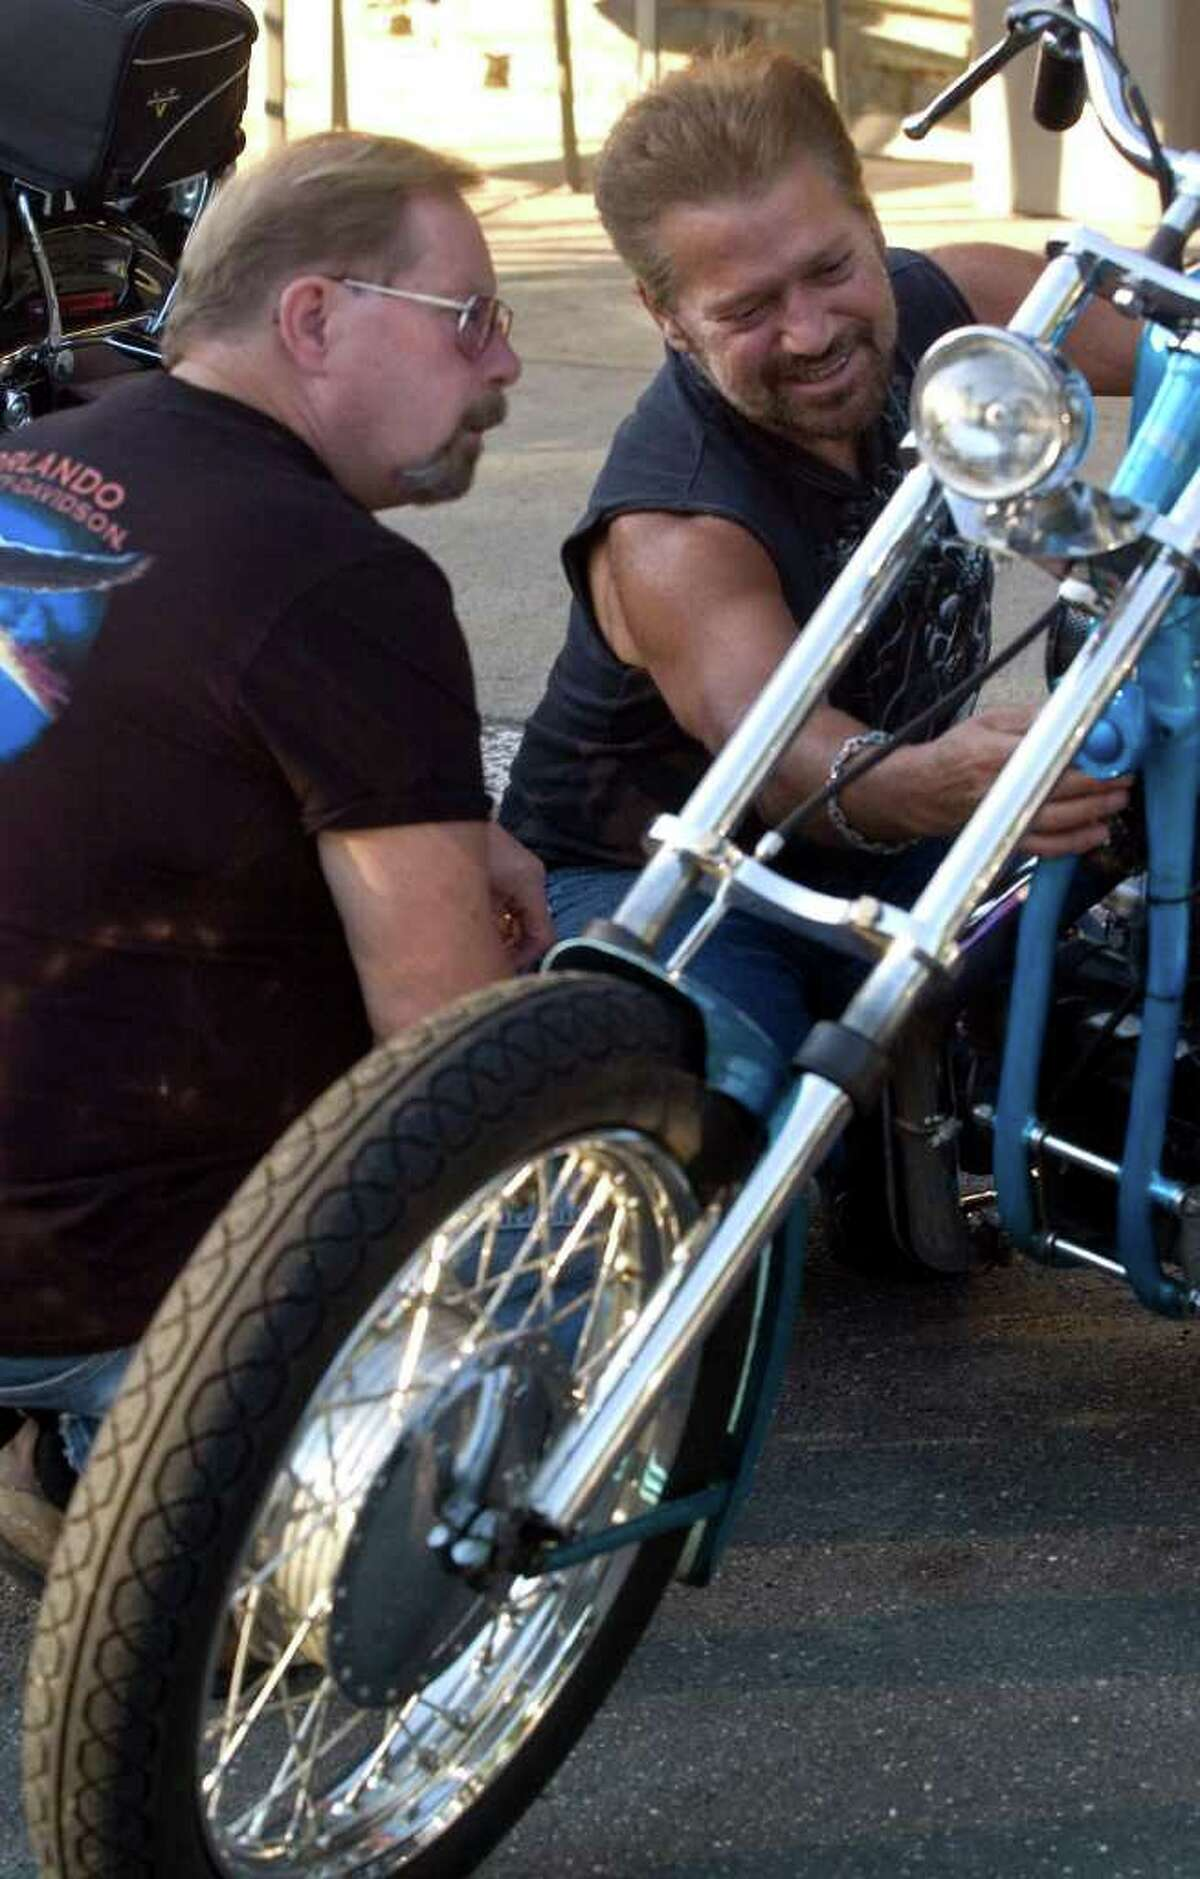 Ralph Gagliardi, of Trumbull, right, shows Norb Setzler, of New Fairfield, his 1964 Sportster during the weekly bike night at Hideaway Cafe on state Route 25 in Newtown on Tuesday, Aug. 23, 2011.